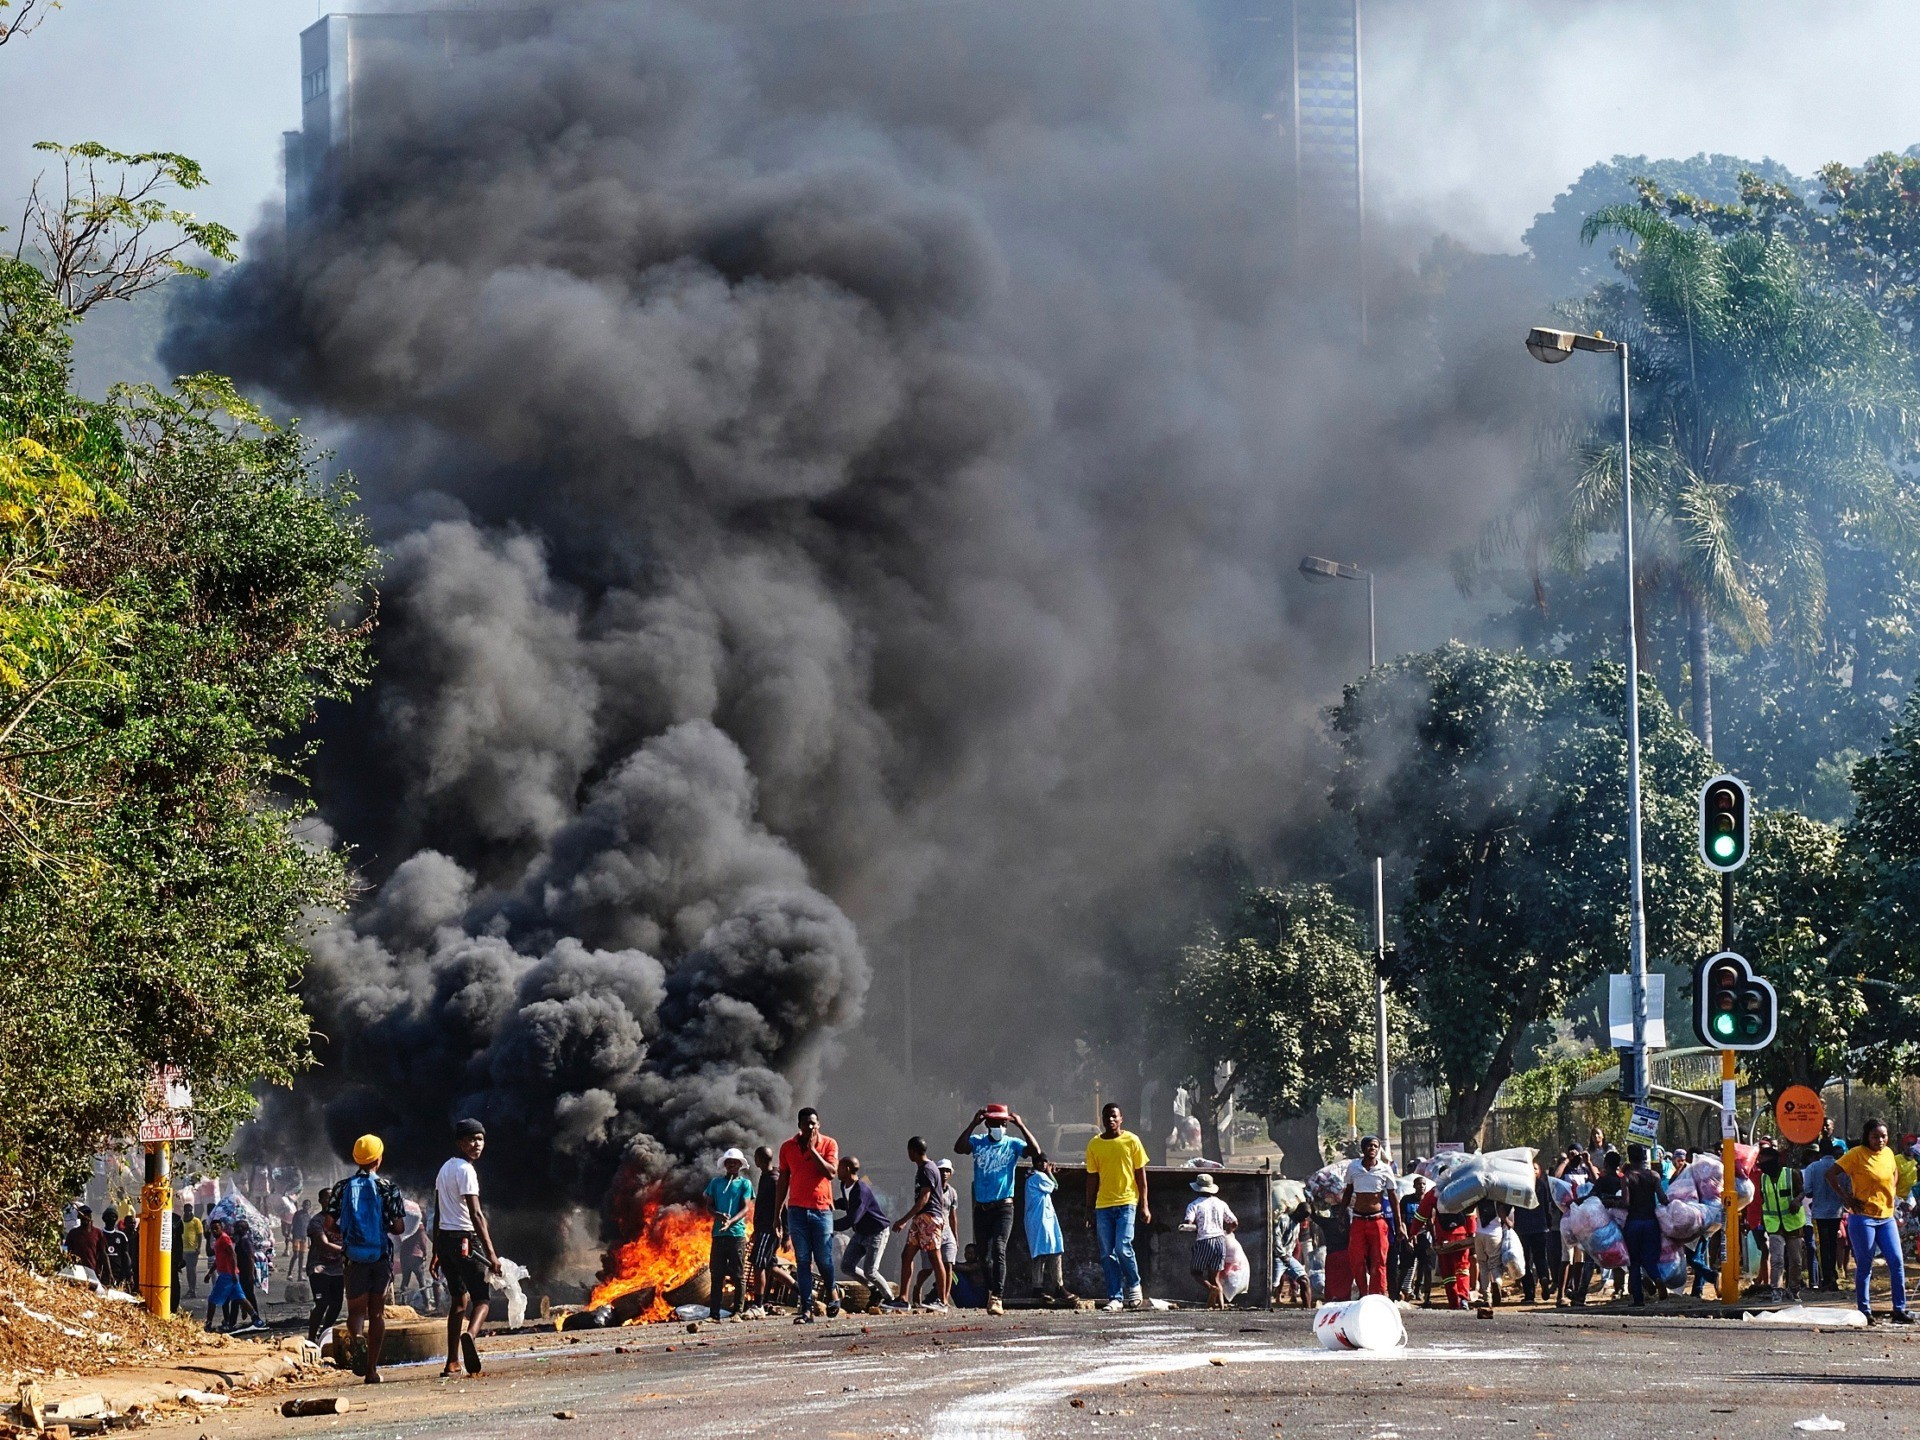 Looters outside a shopping centre alongside a burning barricade in Durban, South Africa, Monday July 12, 2021. Police say six people are dead and more than 200 have been arrested amid escalating violence during rioting that broke out following the imprisonment of South Africa's former President Jacob Zuma. (AP Photo/Andre Swart)